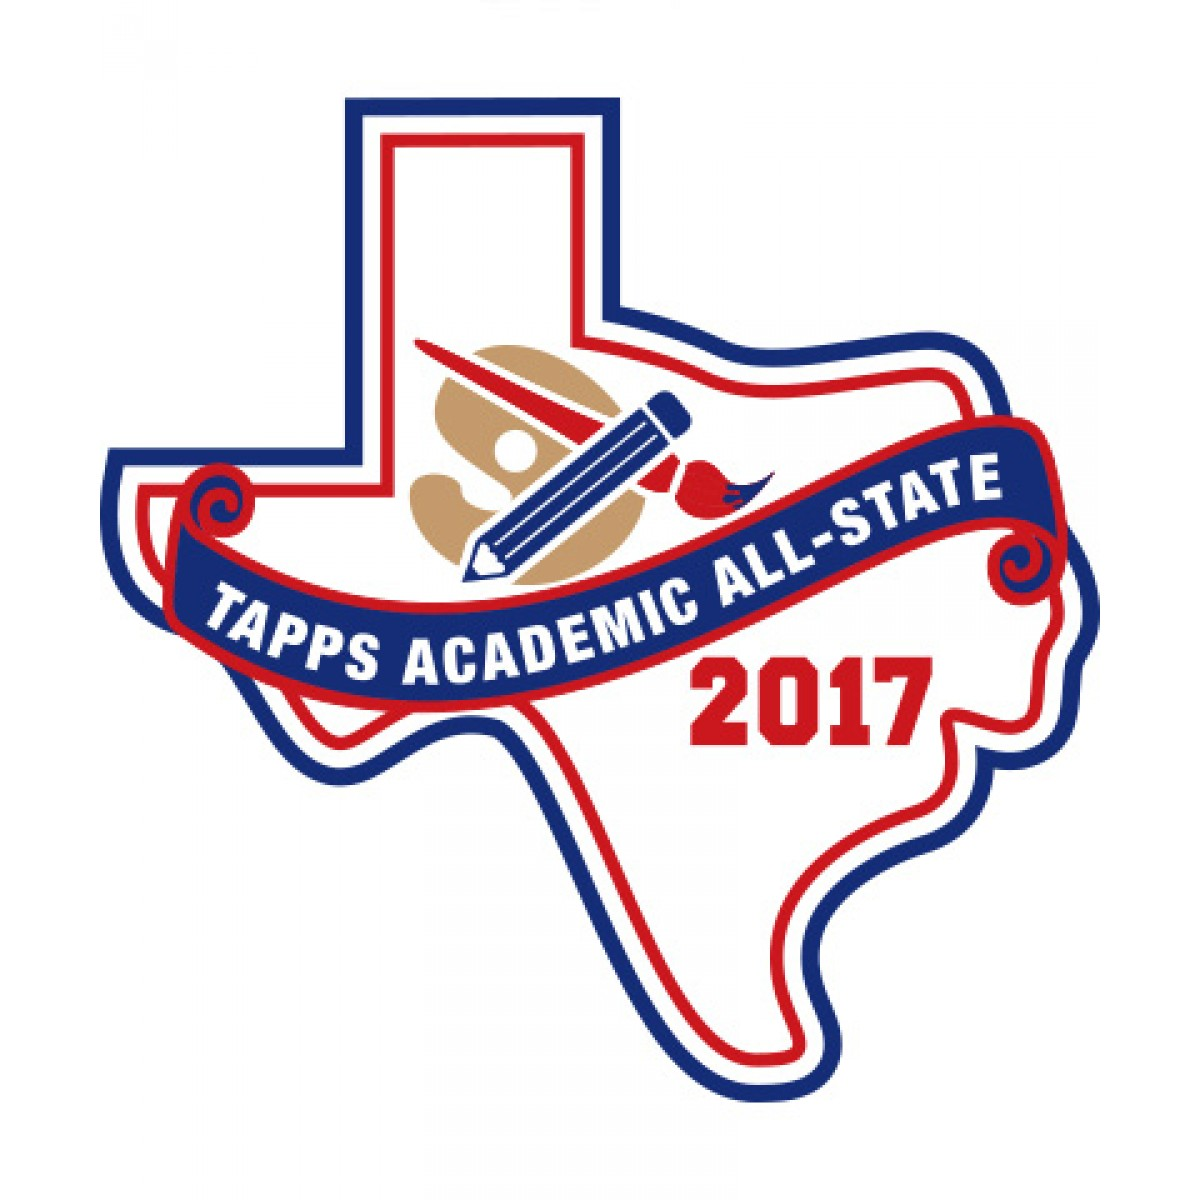 Felt 2017 TAPPS Academic All-State Art & Academic Patch